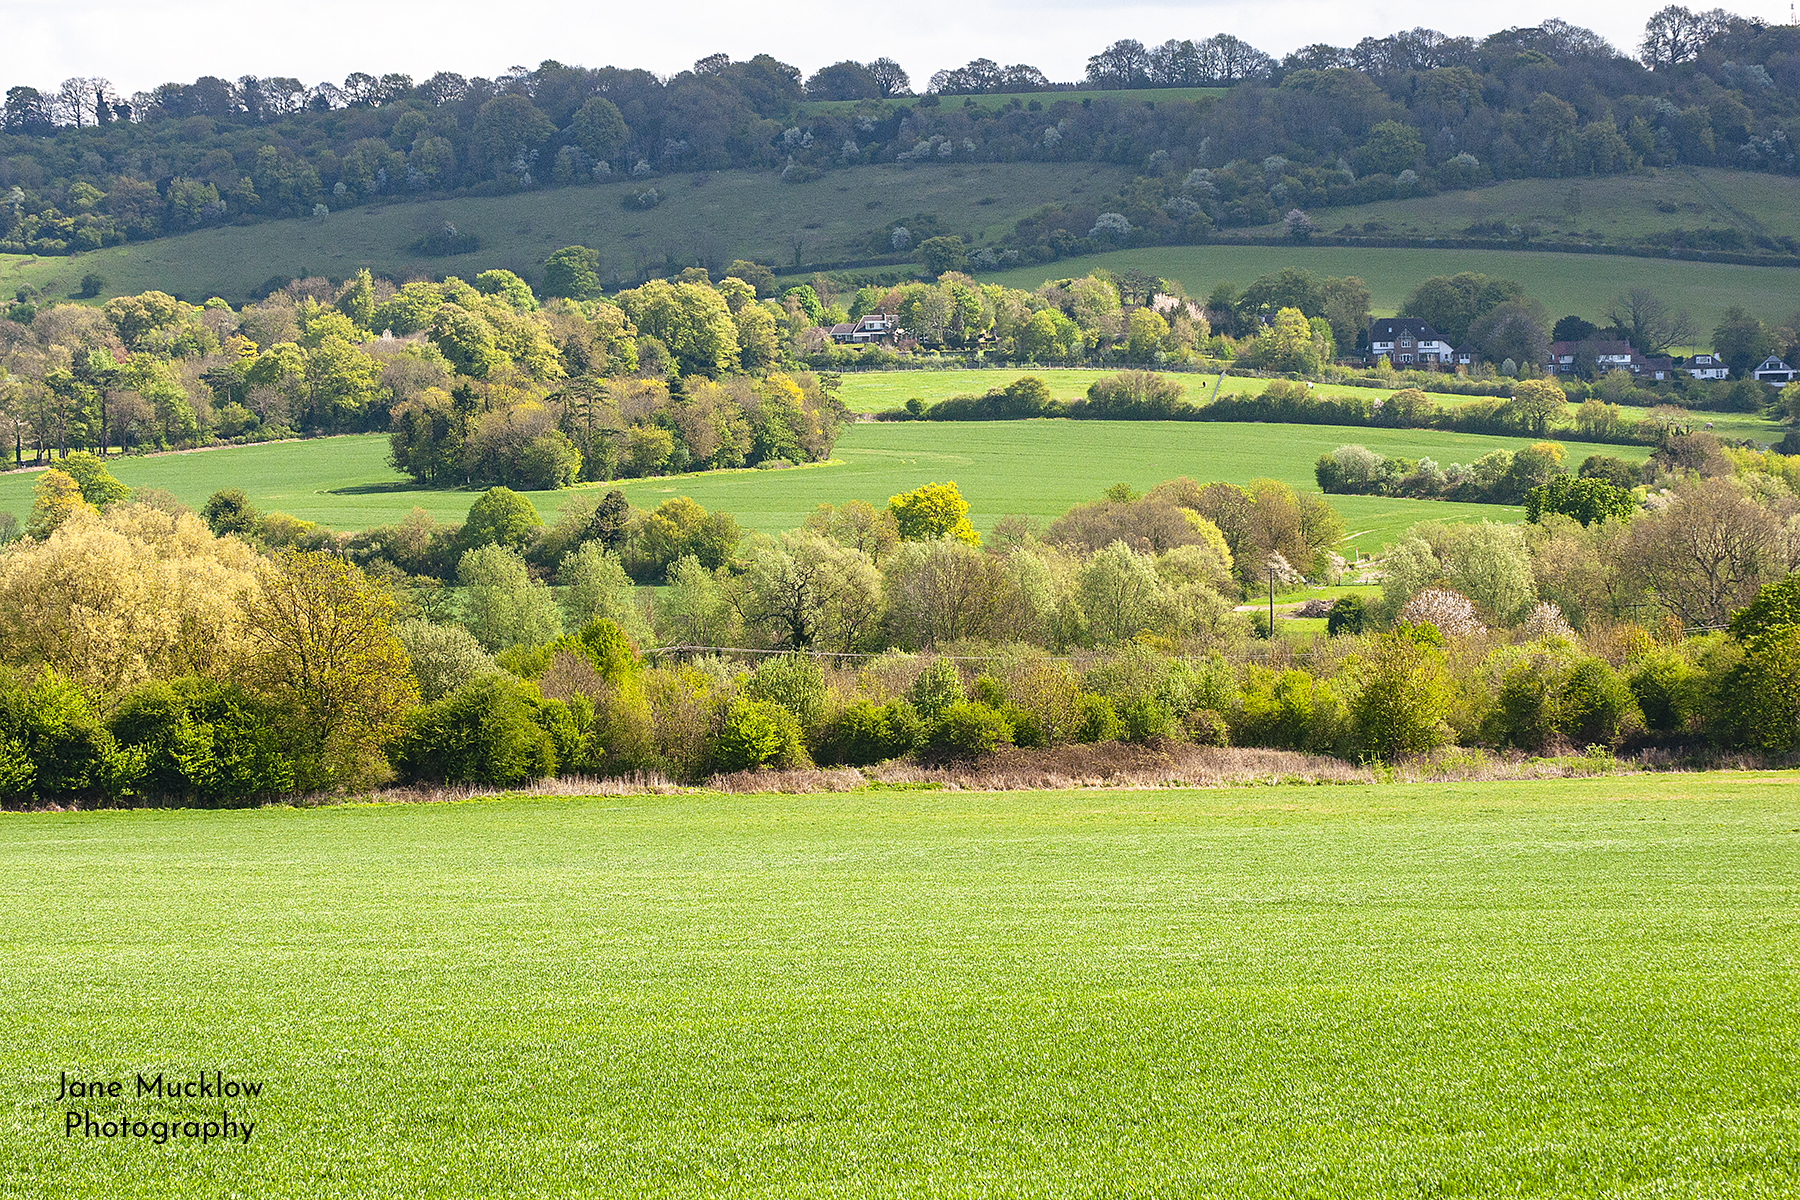 Photograph by Jane Mucklow of a Spring view across the fields to the Mount